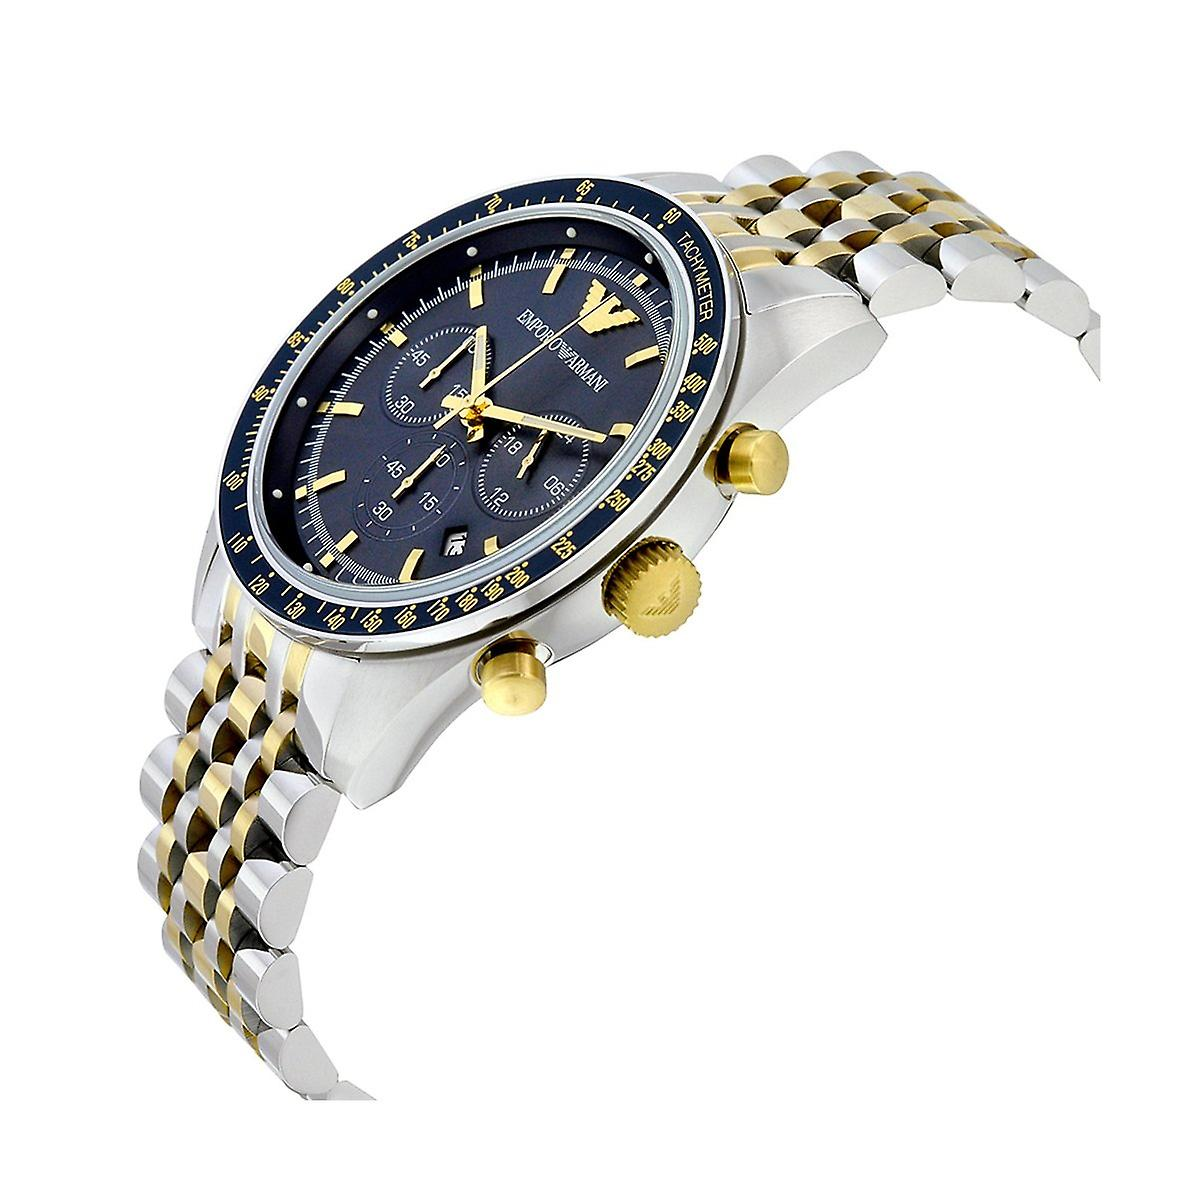 Armani watches ar6088 blue dial & two tone stainless steel chronograph